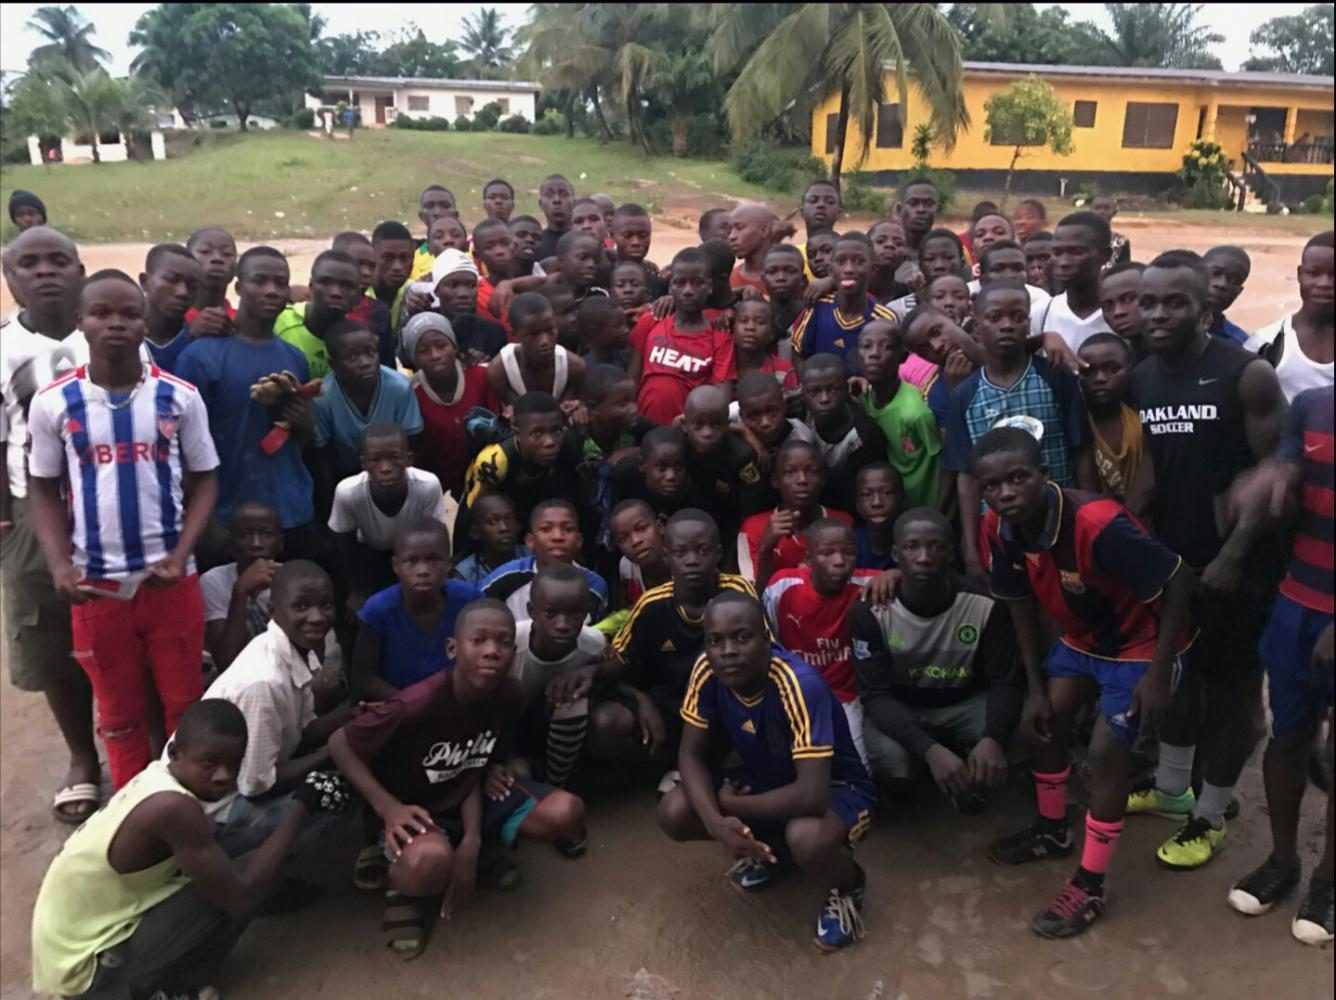 Oakland+soccer+player+pays+tuition+and+supports+soccer+team+for+kids+in+Liberia